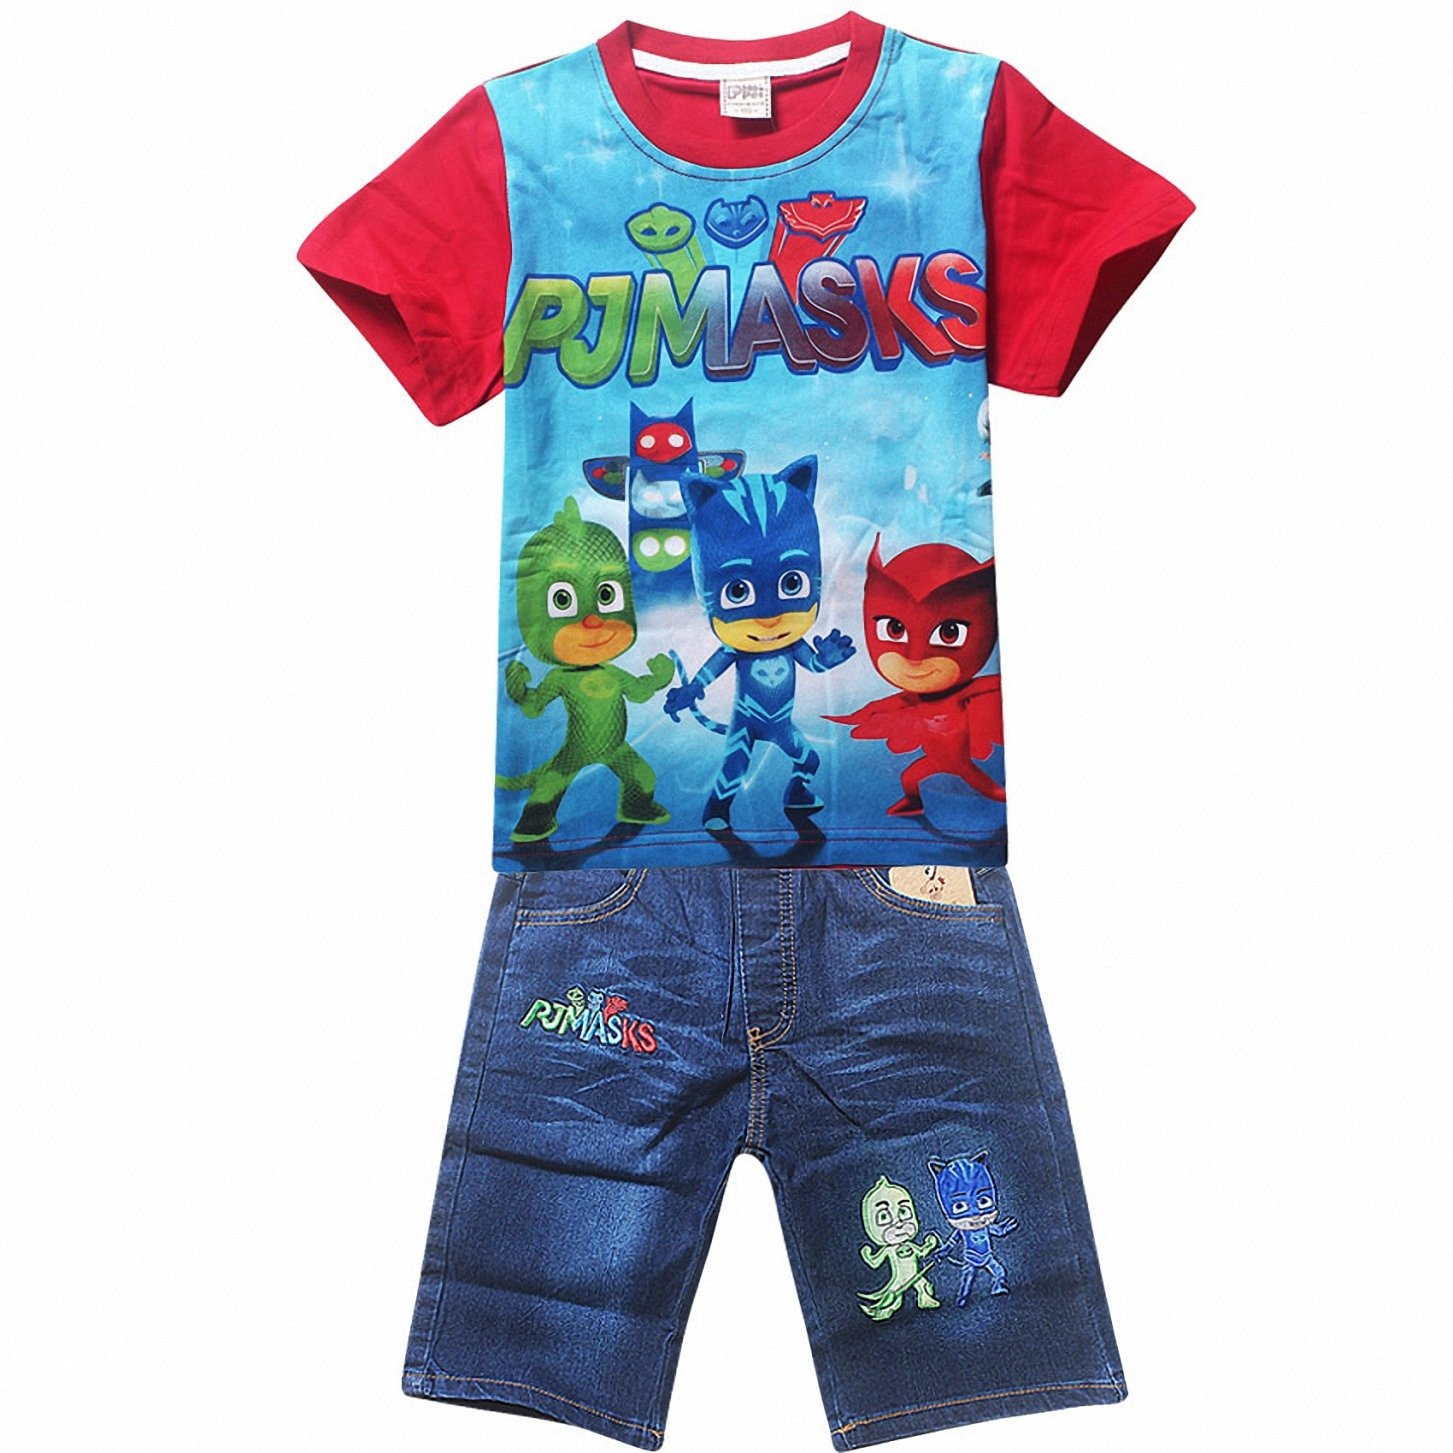 amazon com owone box baby kids birthday gift pj masks baby kids